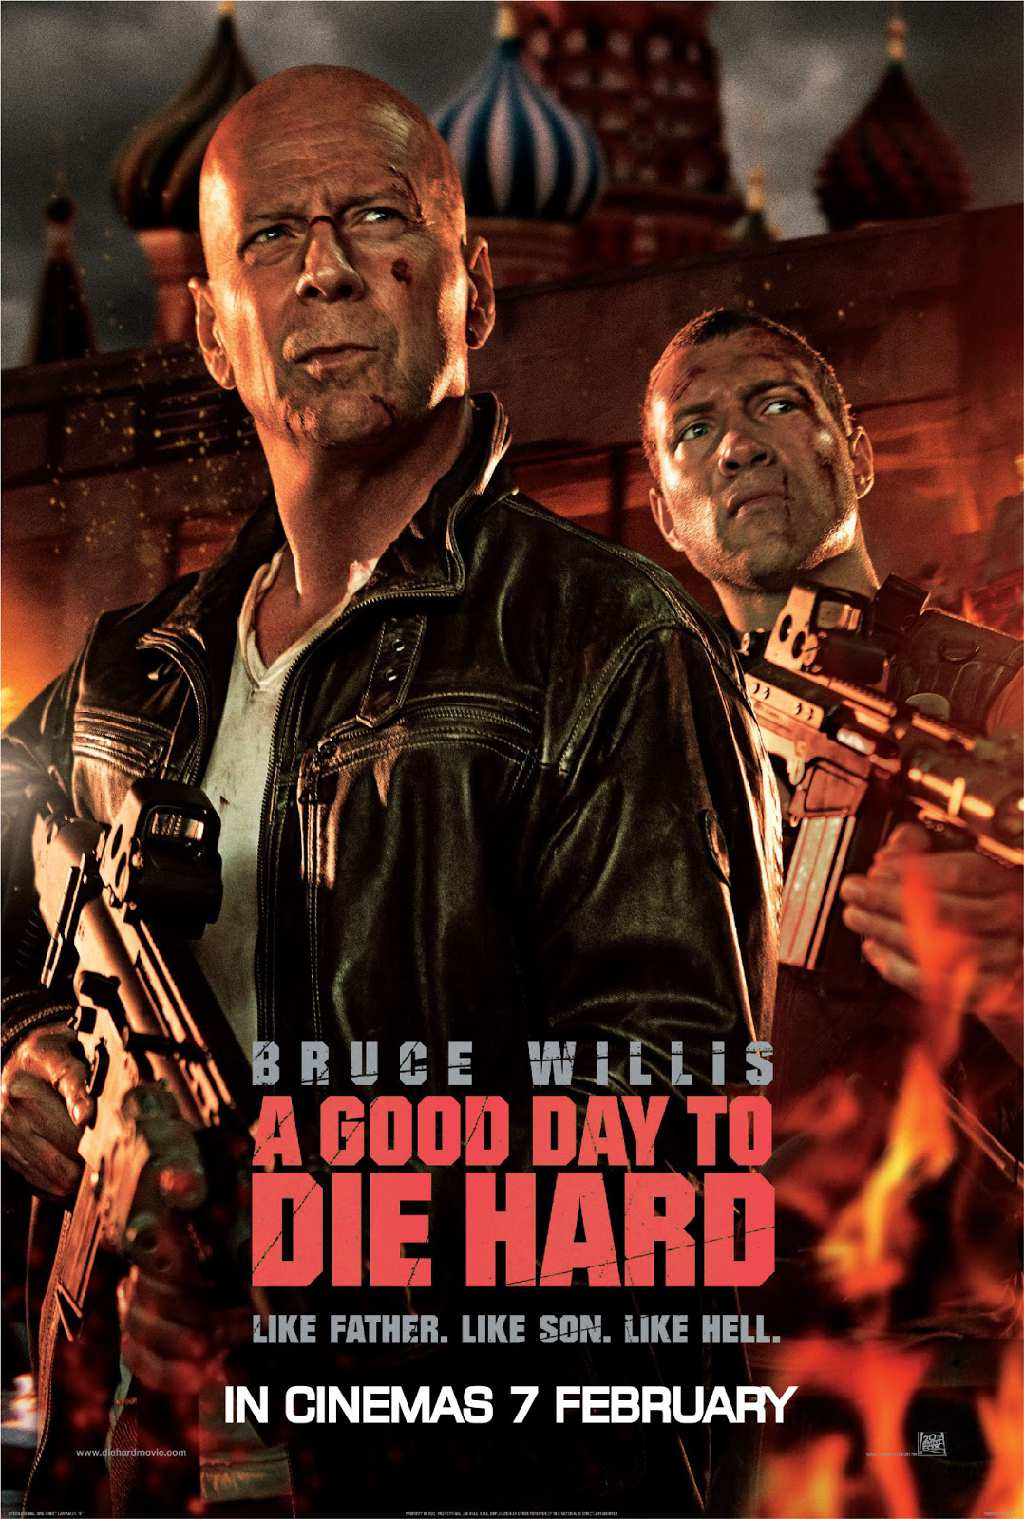 http://4.bp.blogspot.com/-gXZmFmJH1vg/USN9tWqolAI/AAAAAAAAAQ0/JzD79AaO4NI/s1600/Good+Day+To+Die+Hard+5+film+2013+movie+poster+large.jpg